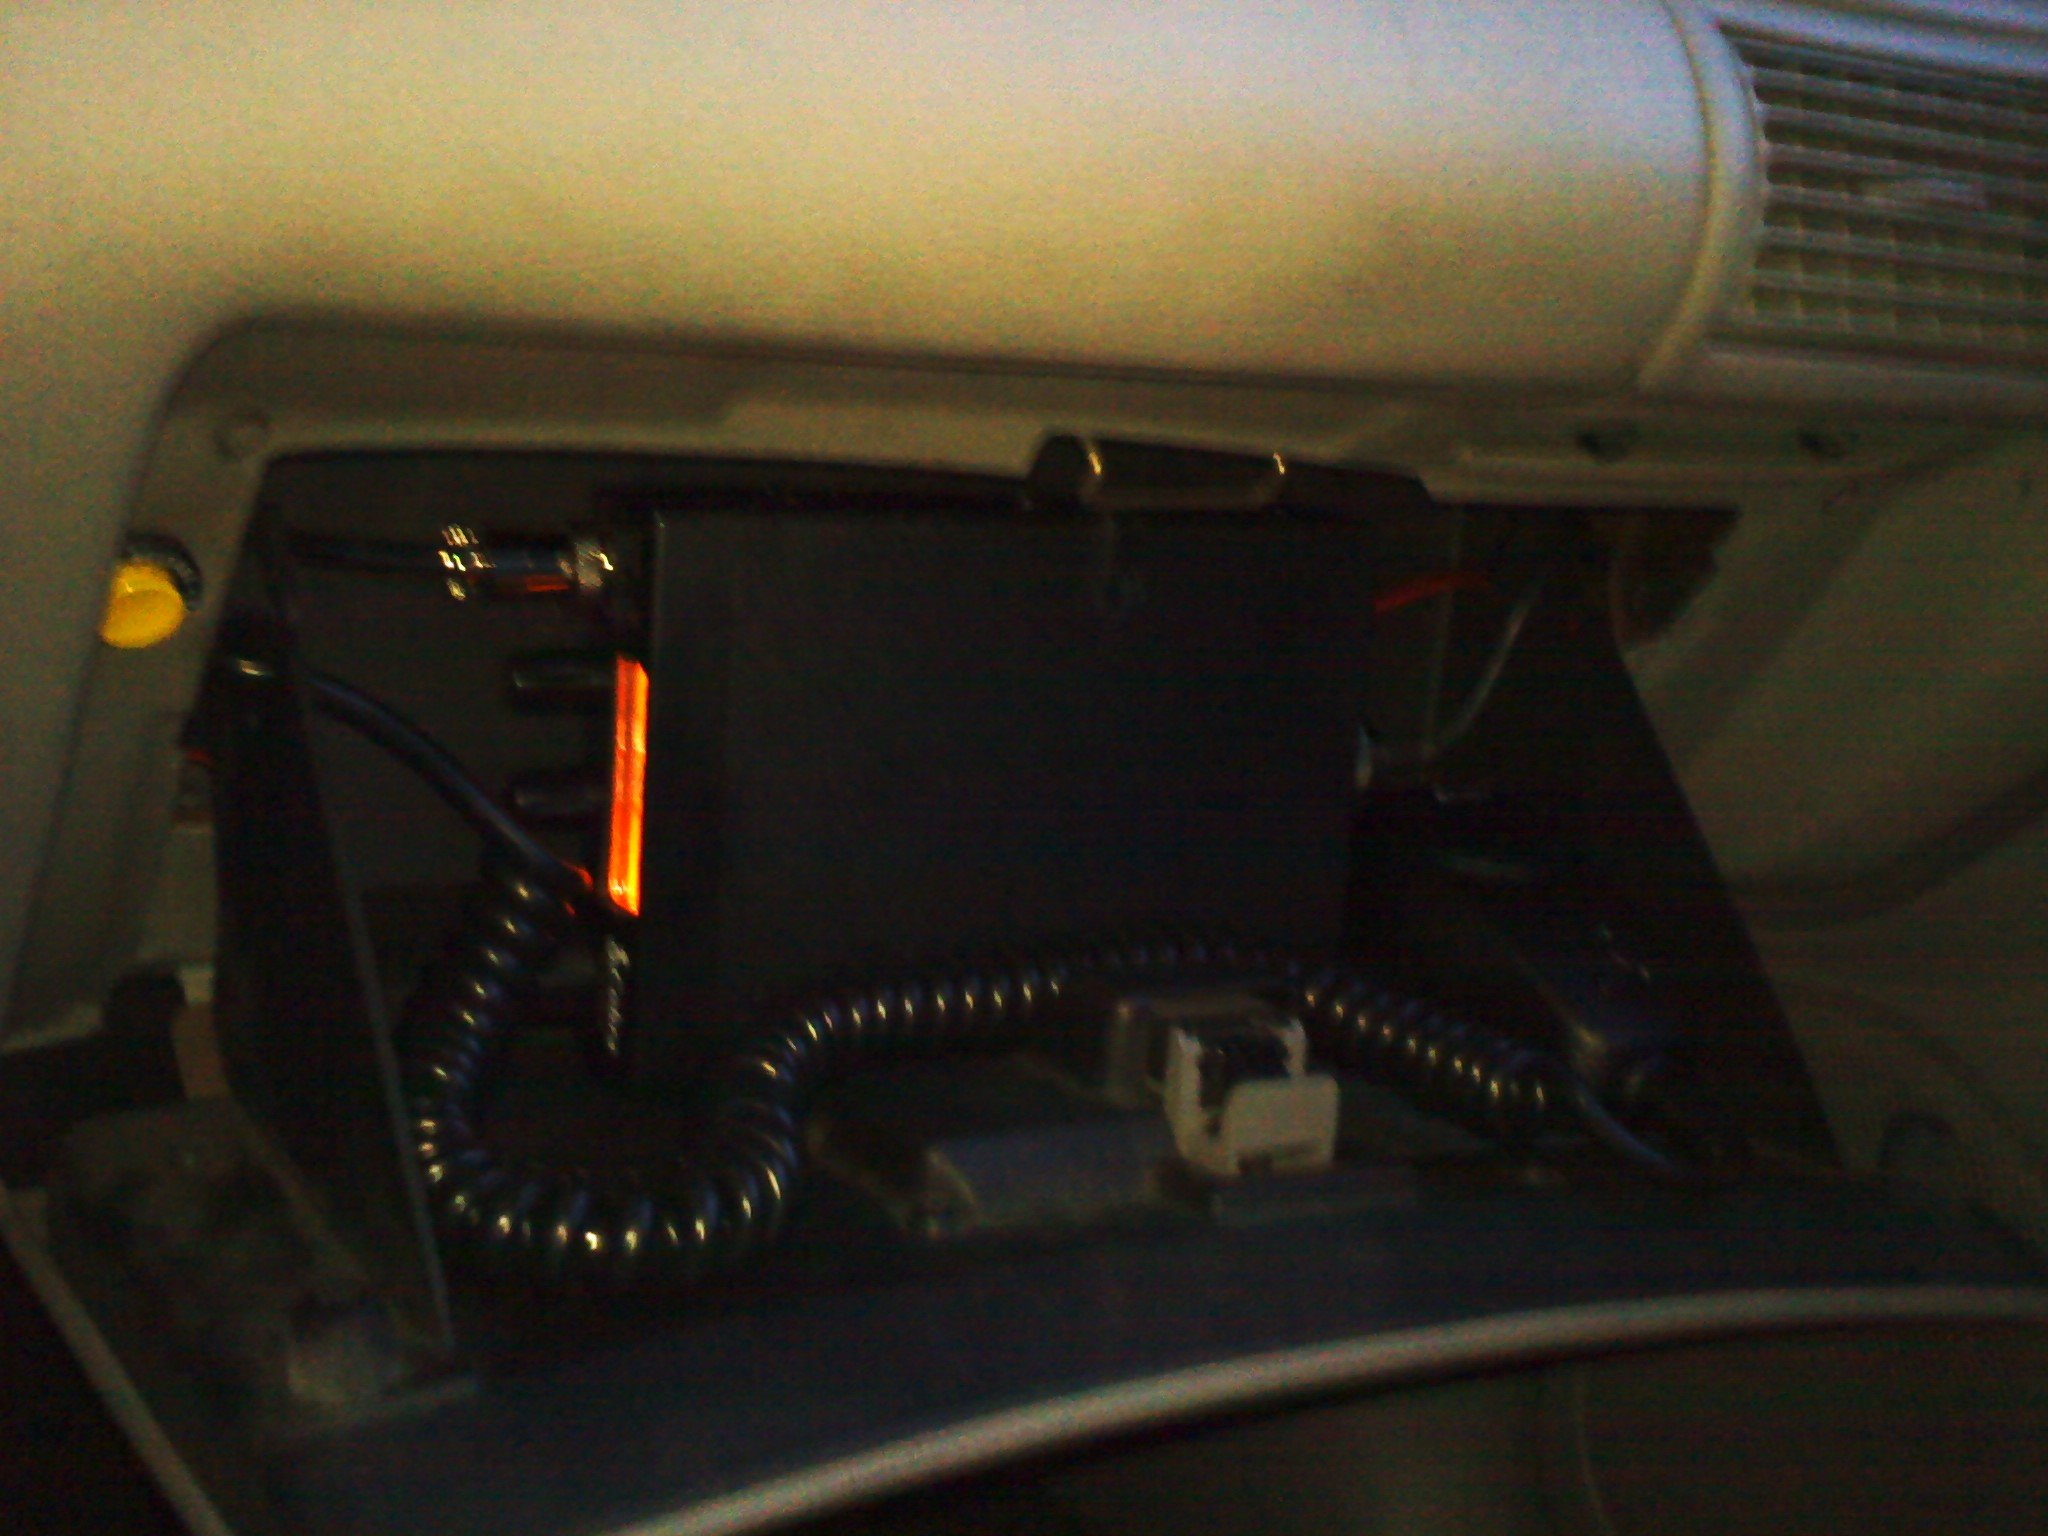 79597d1253835618 2000 mustang cb radio fuse box touble cb location2 2000 mustang cb radio fuse box touble ford mustang forum 2008 mustang fuse box location at crackthecode.co